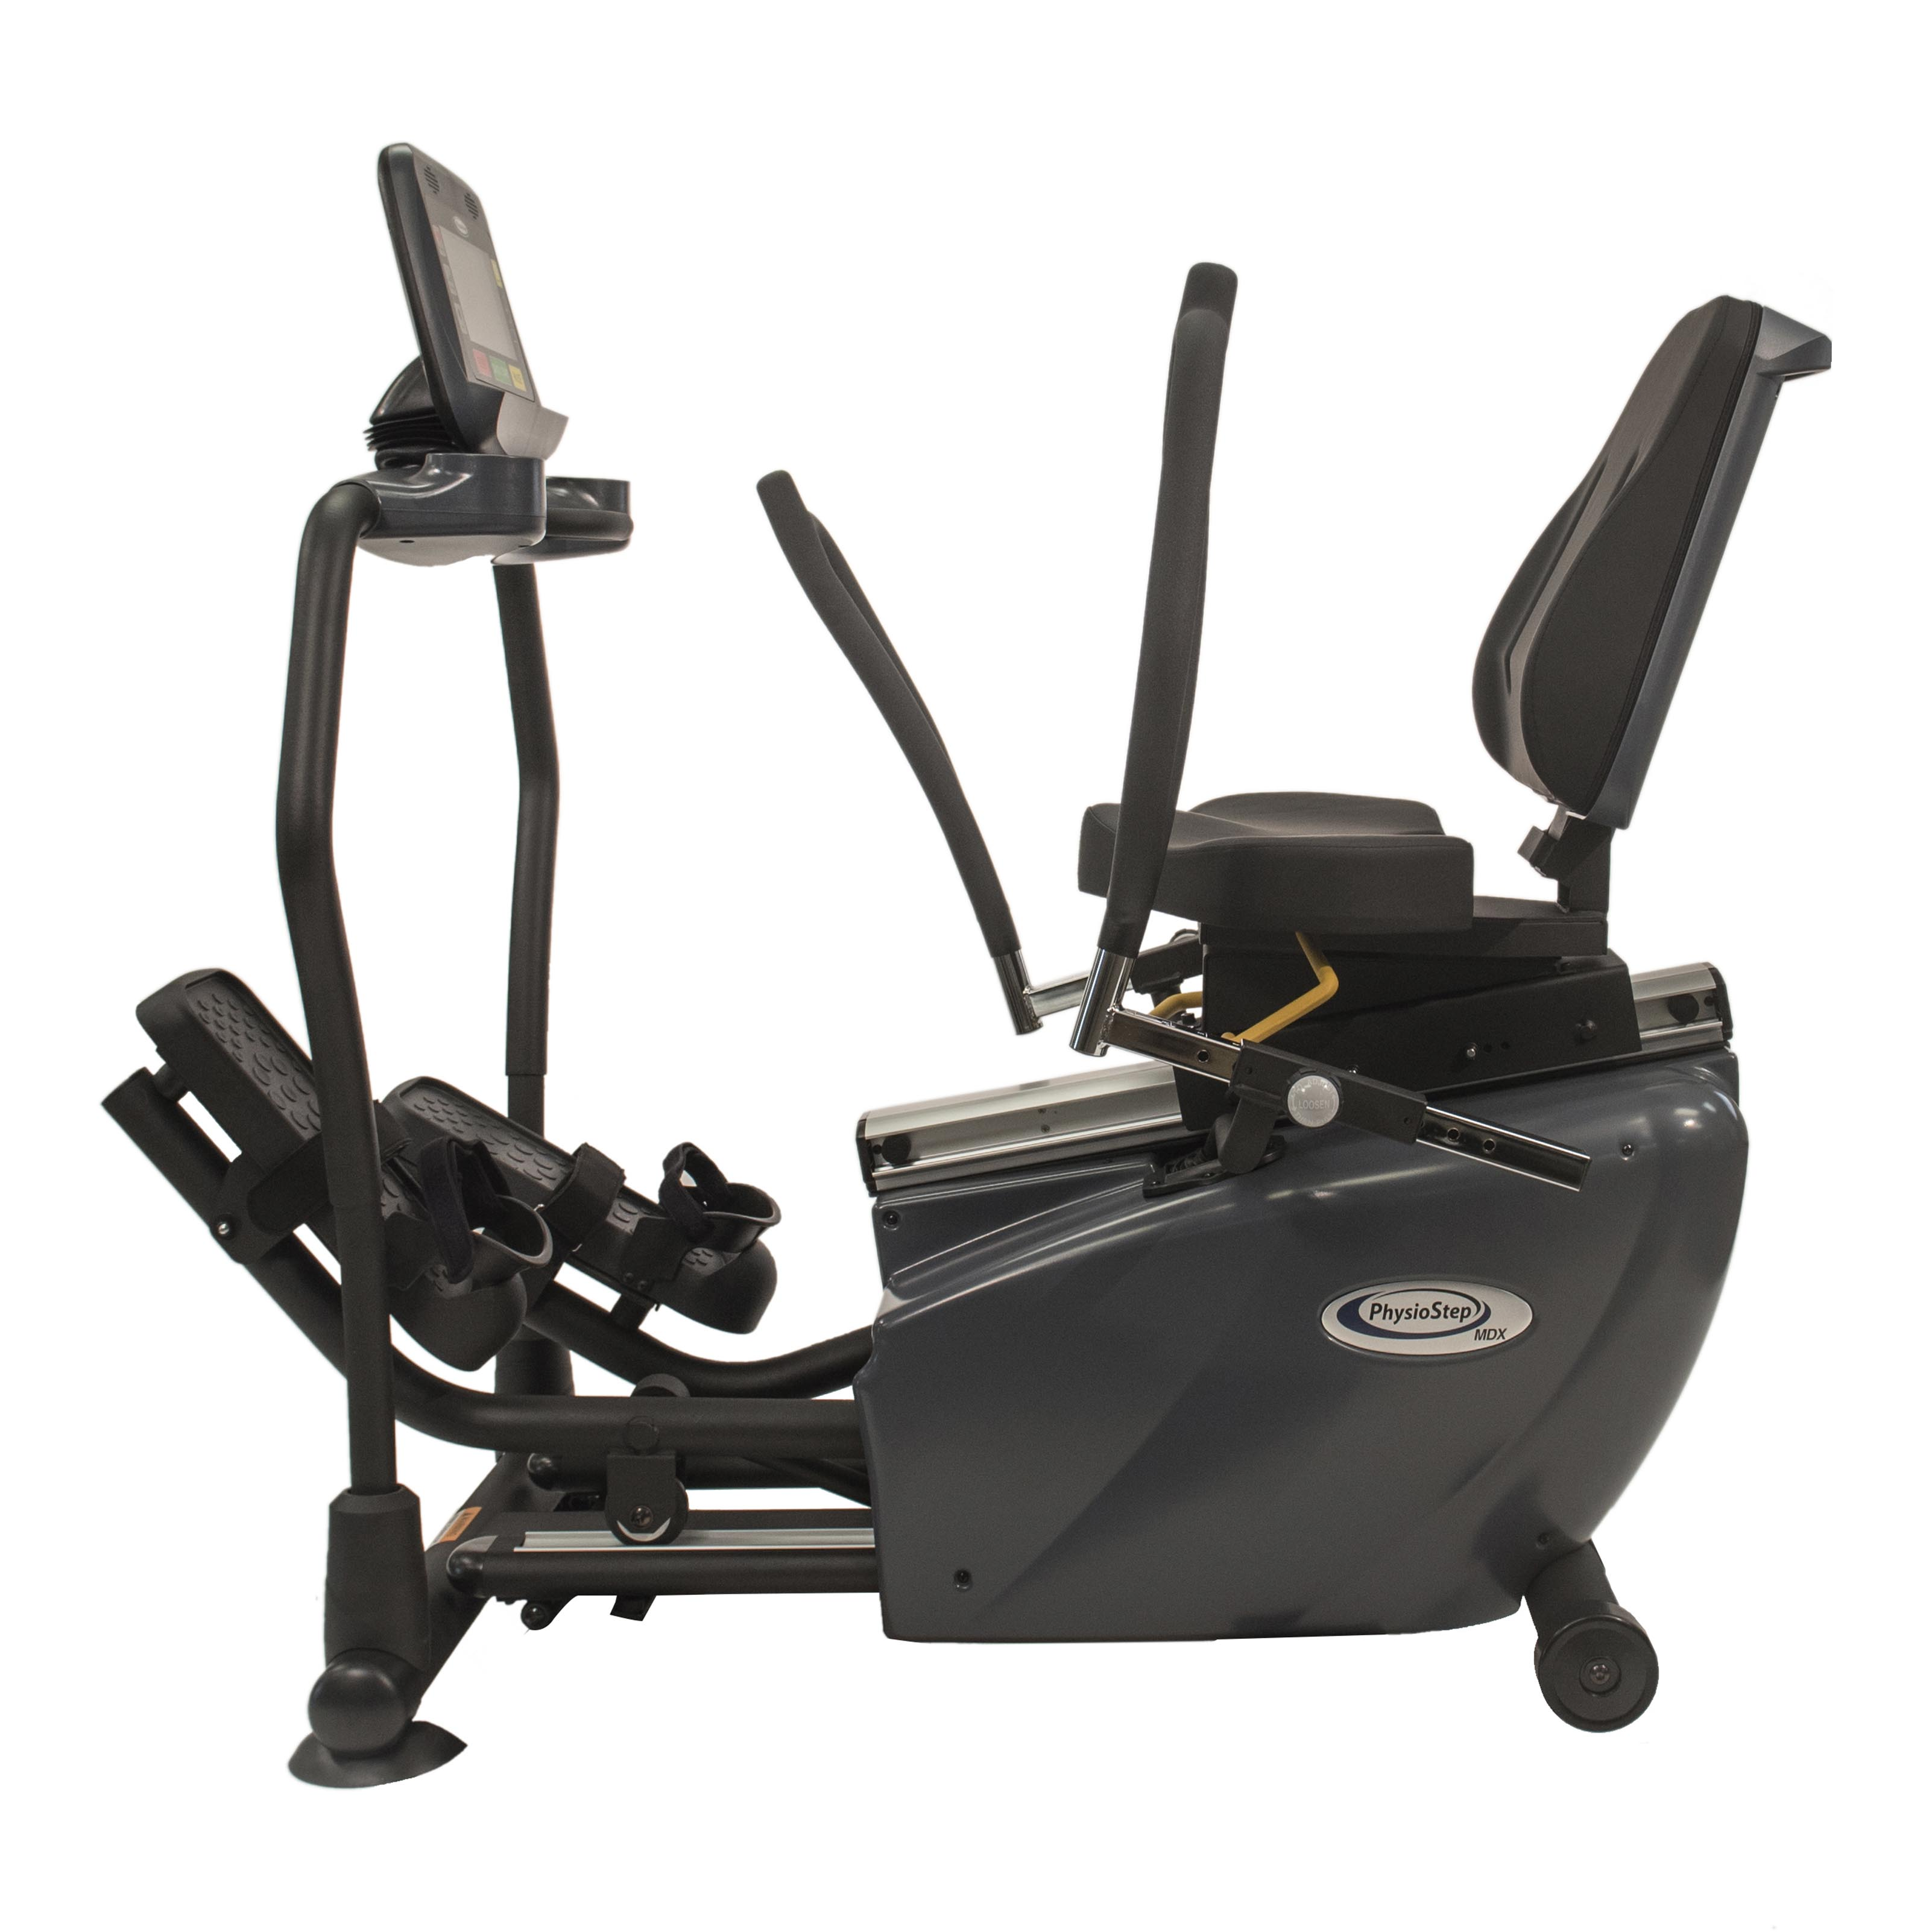 PhysioStep MDX Recumbent Elliptical Side